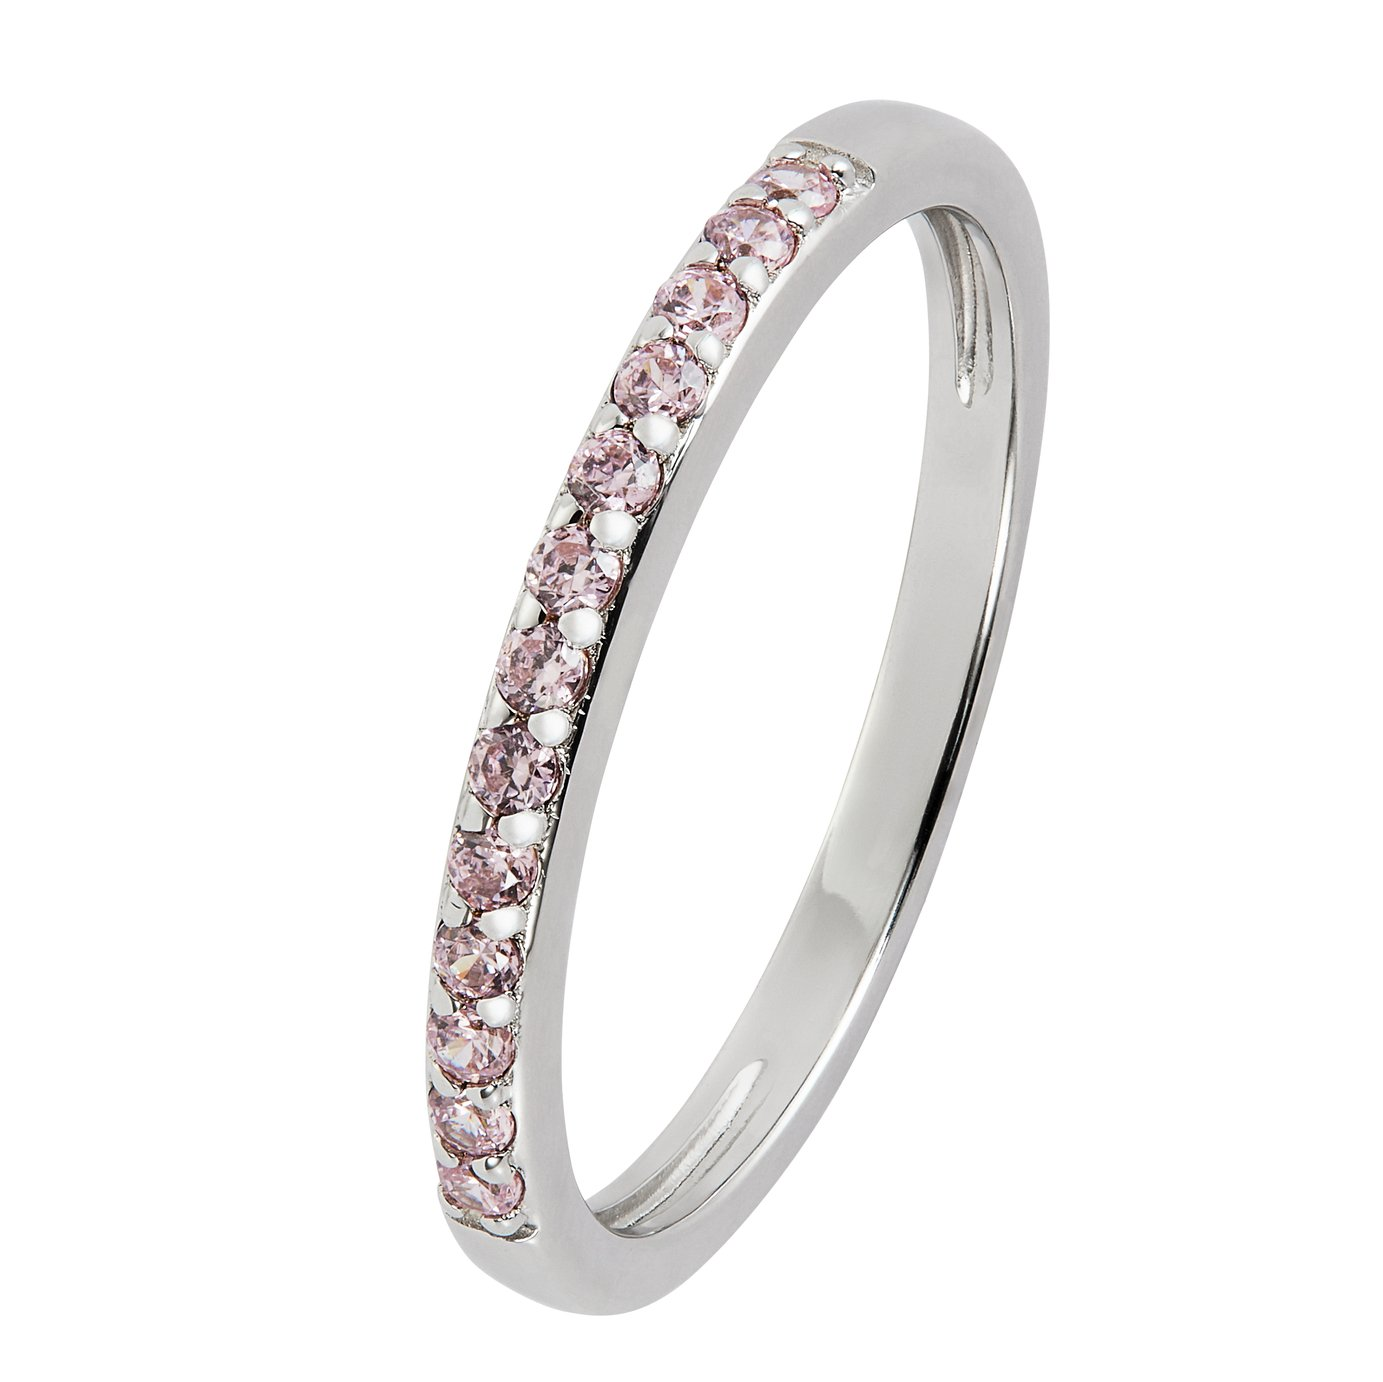 Revere Sterling Silver Pink Cubic Zirconia Stack Ring – N502/5970